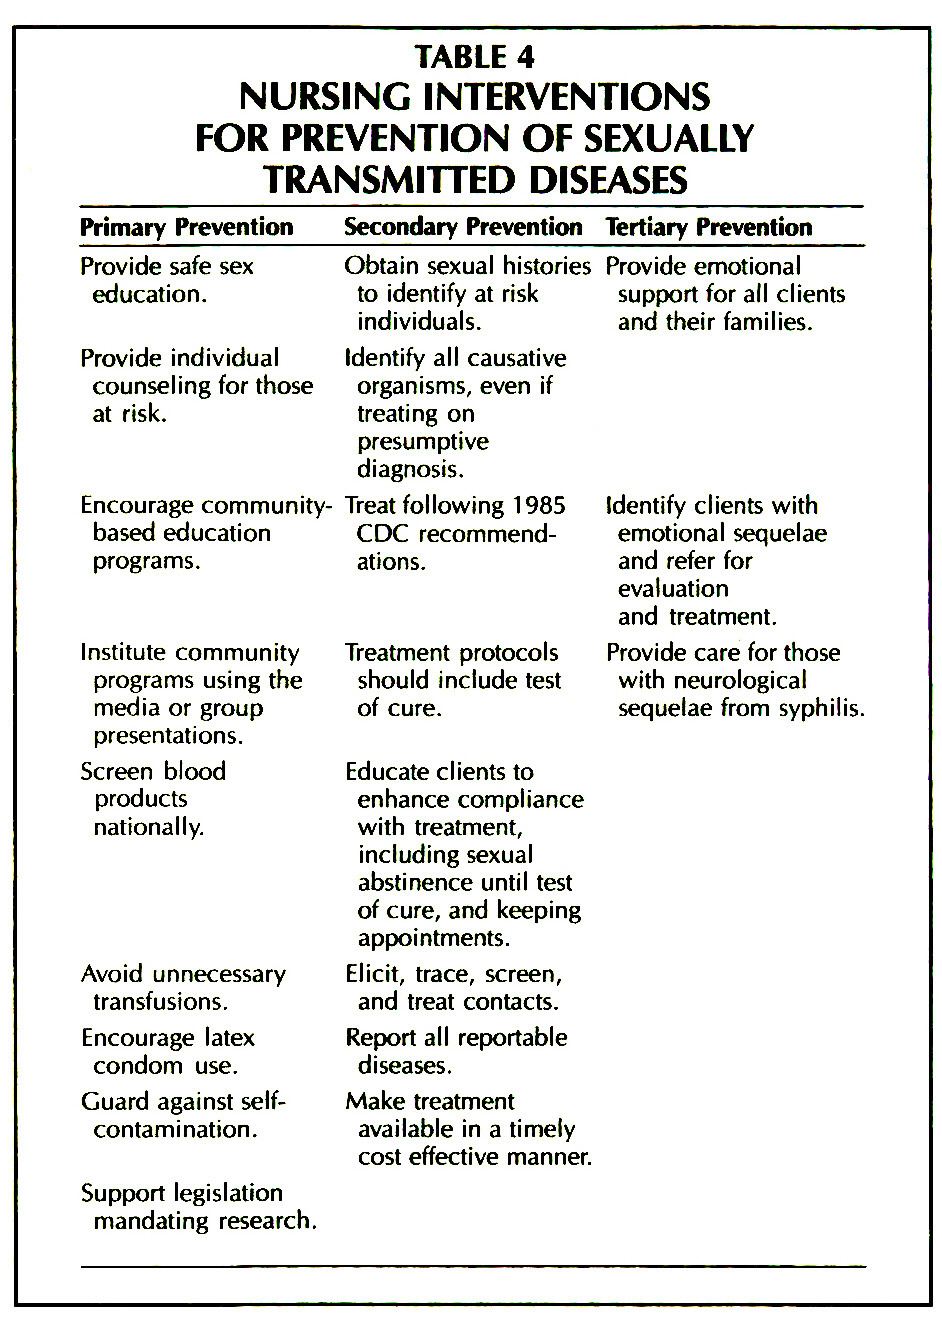 TABLE 4NURSING INTERVENTIONS FOR PREVENTION OF SEXUALLY TRANSMITTED DISEASES